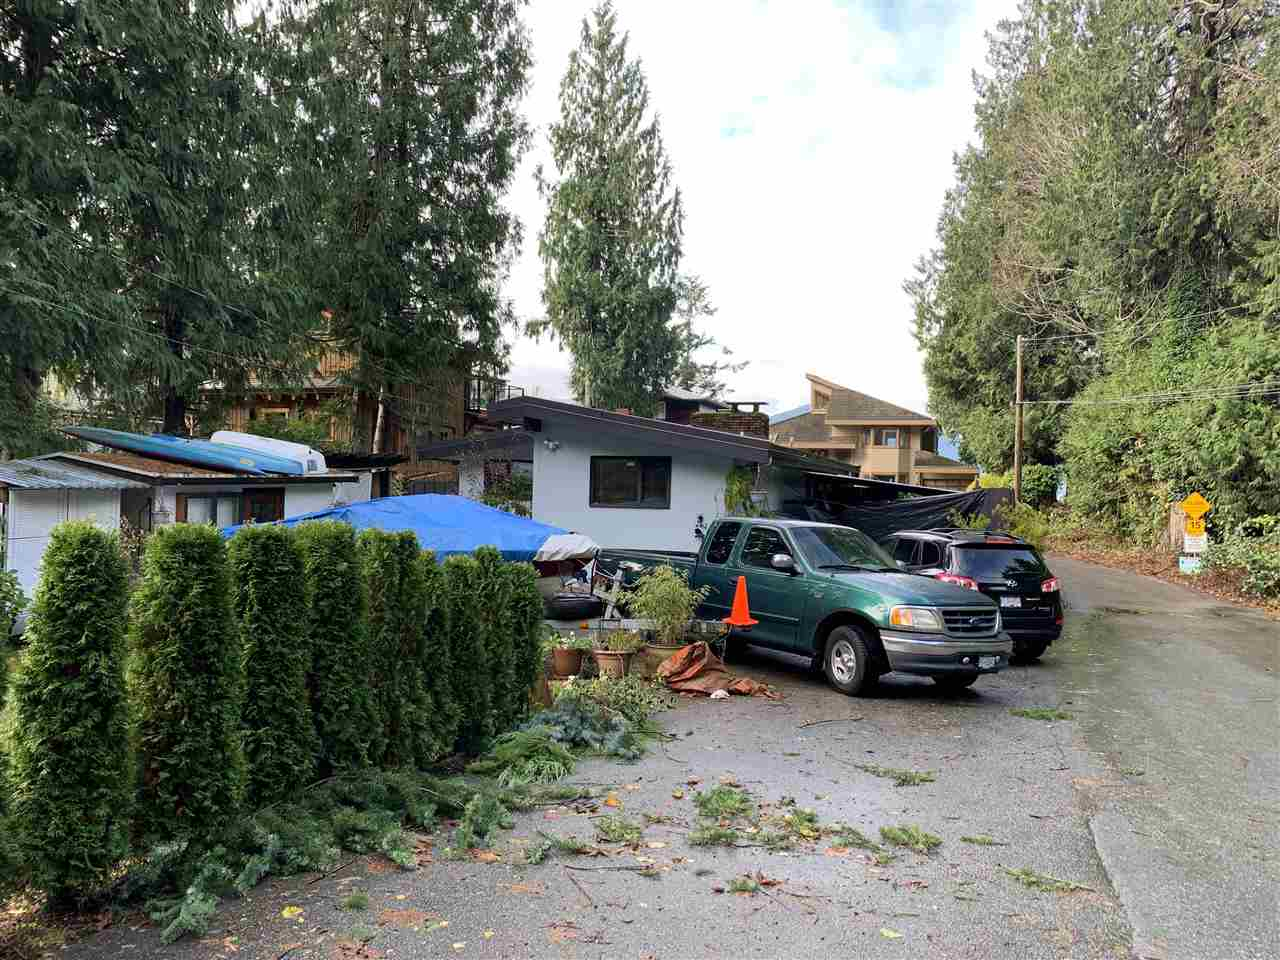 27 BRUNSWICK BEACH ROAD - Lions Bay House/Single Family for sale, 2 Bedrooms (R2518865) - #6